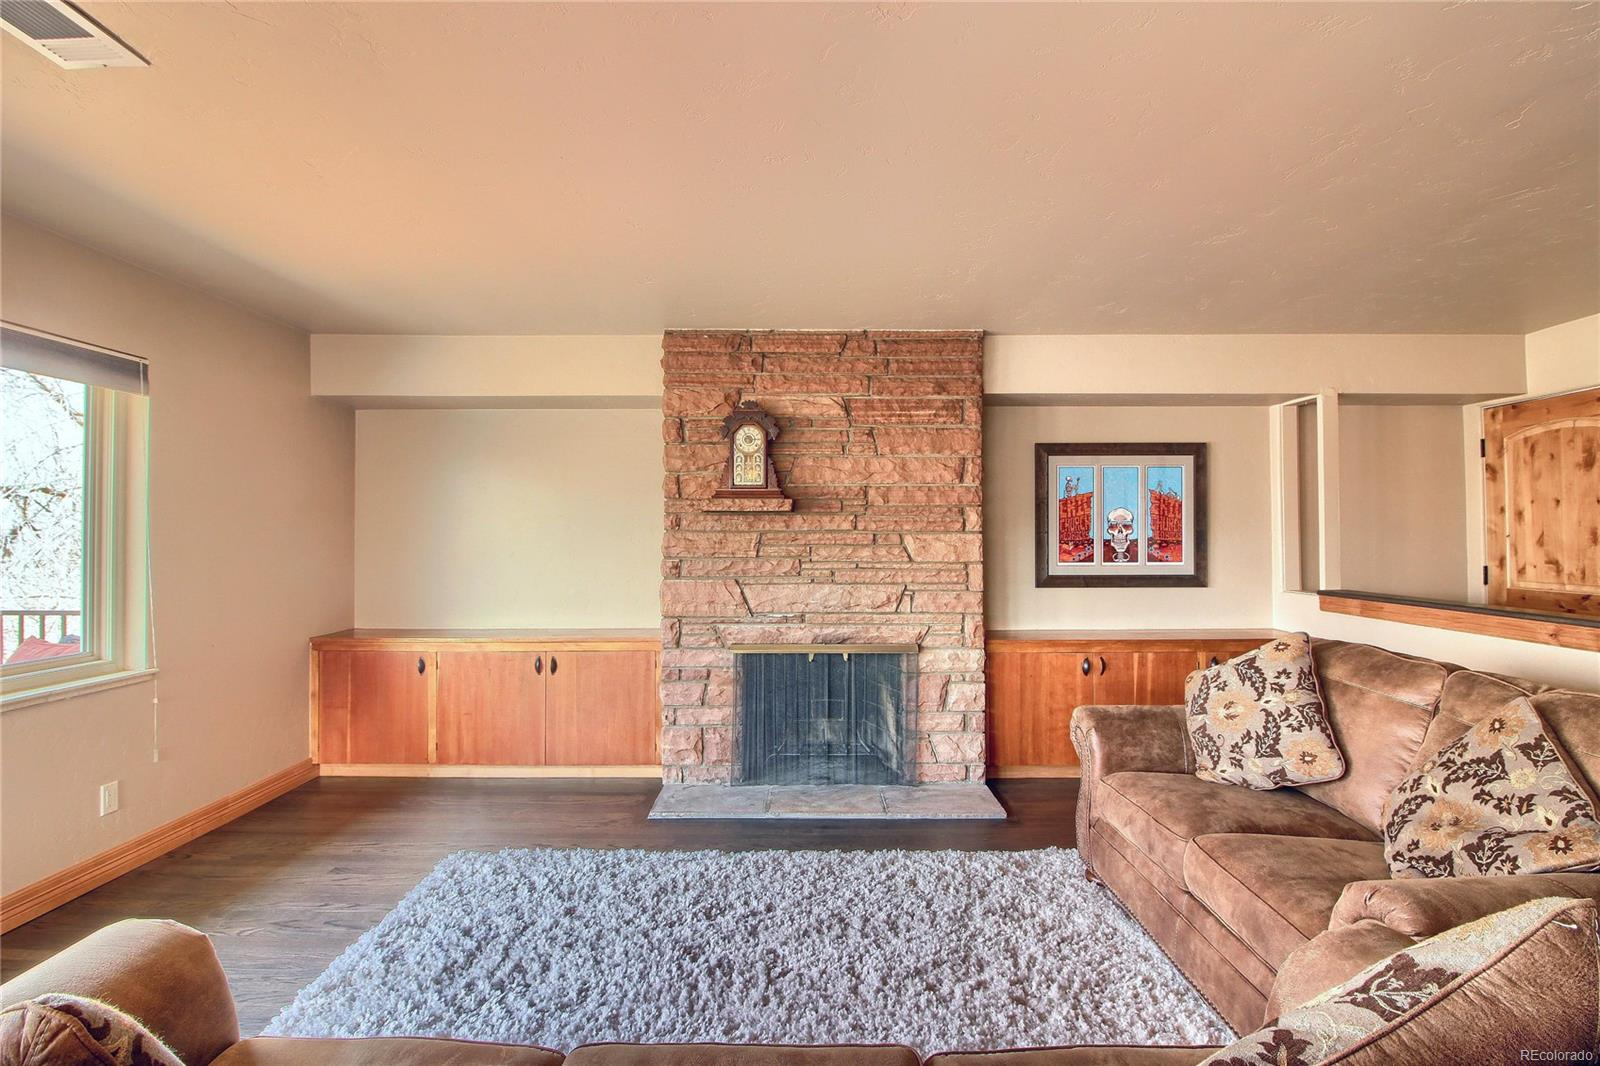 Wood Floors In Mint Condition - Wood Burning Fireplace!